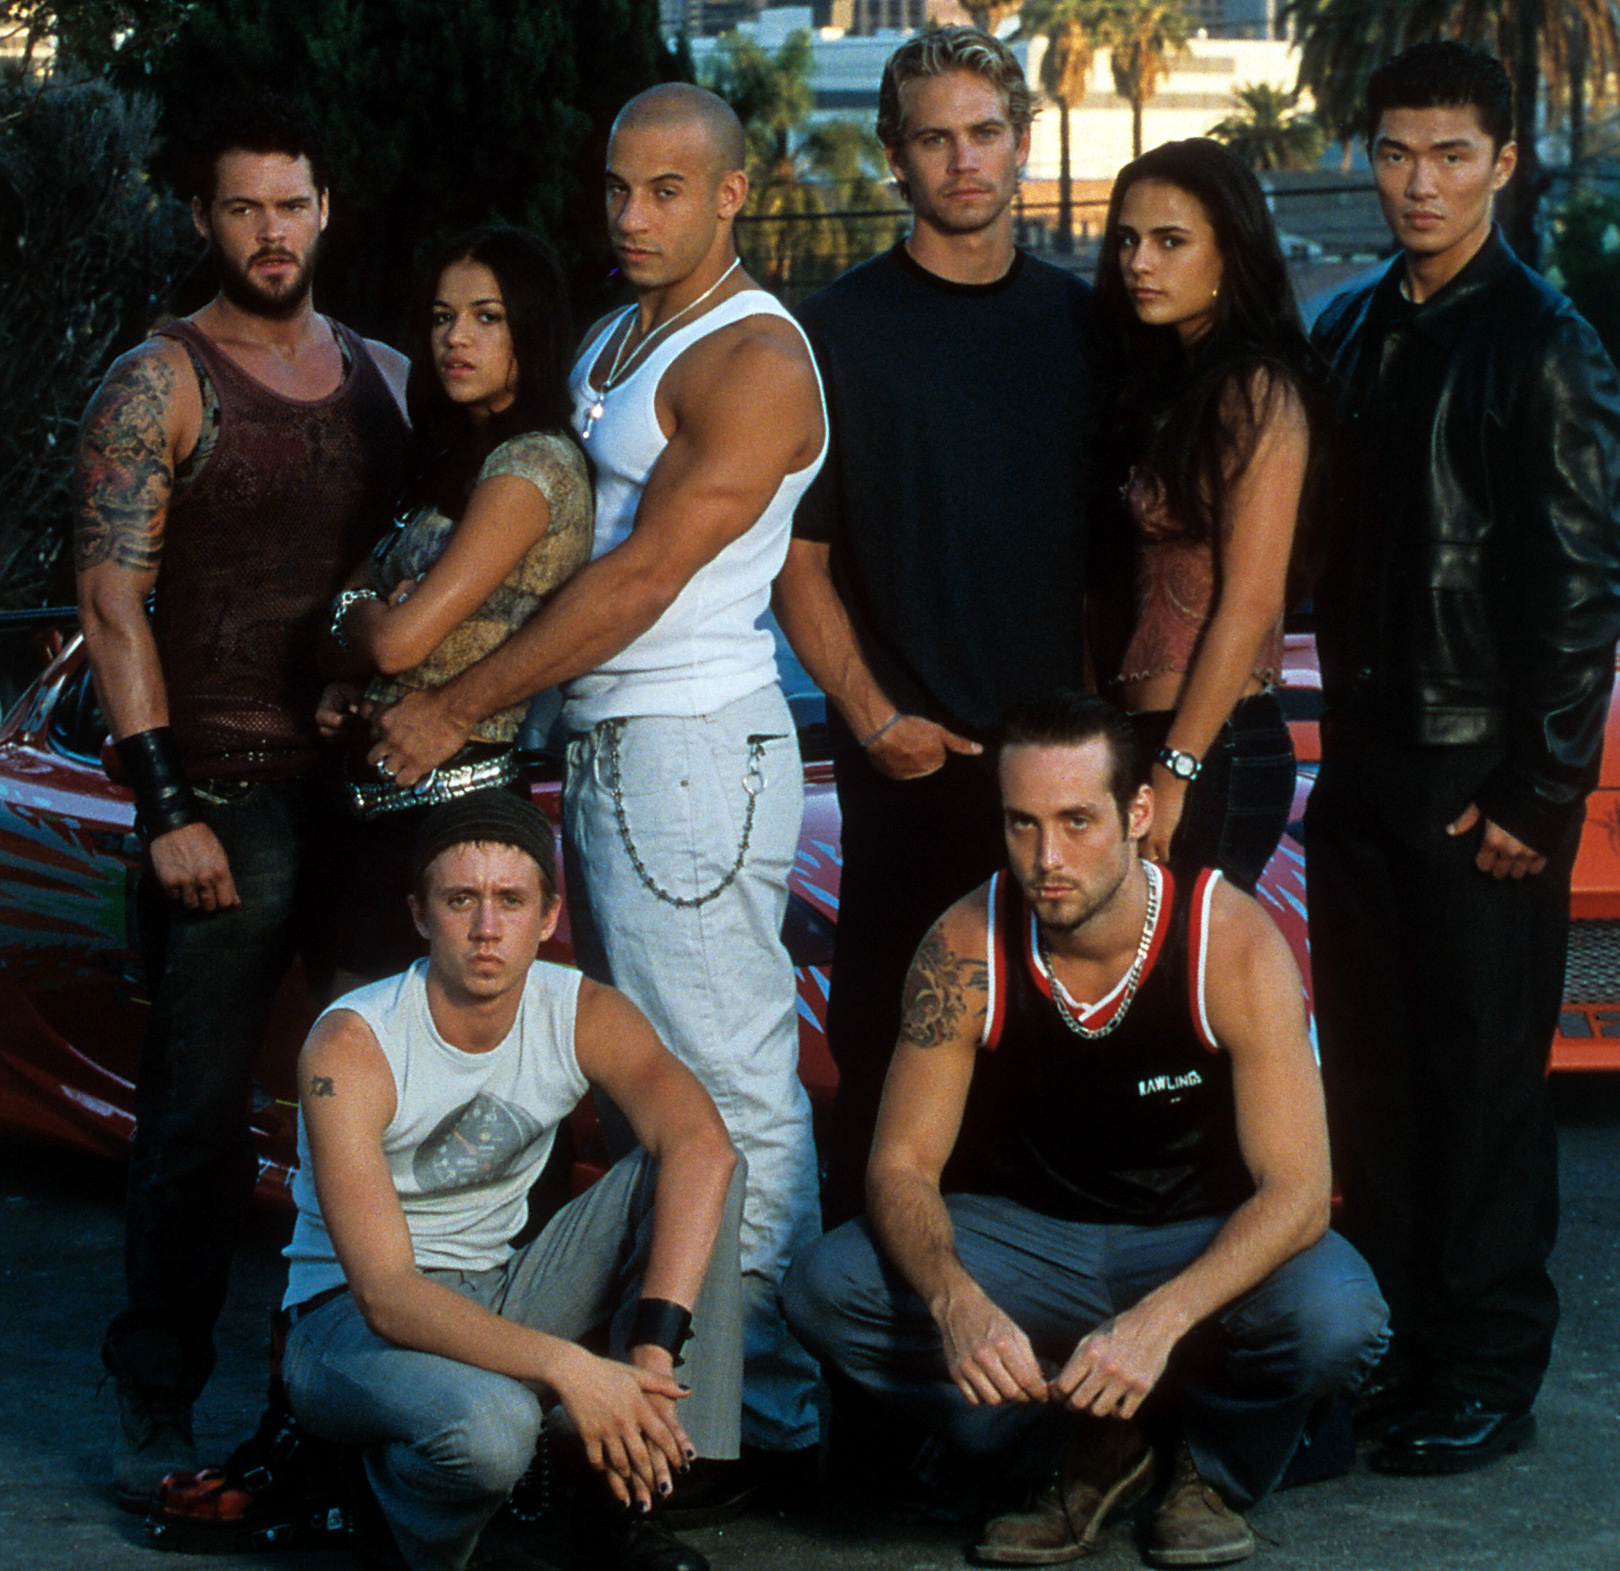 Vin Diesel Wasn't Studio's First Choice for Dom In 'The Fast and The Furious'